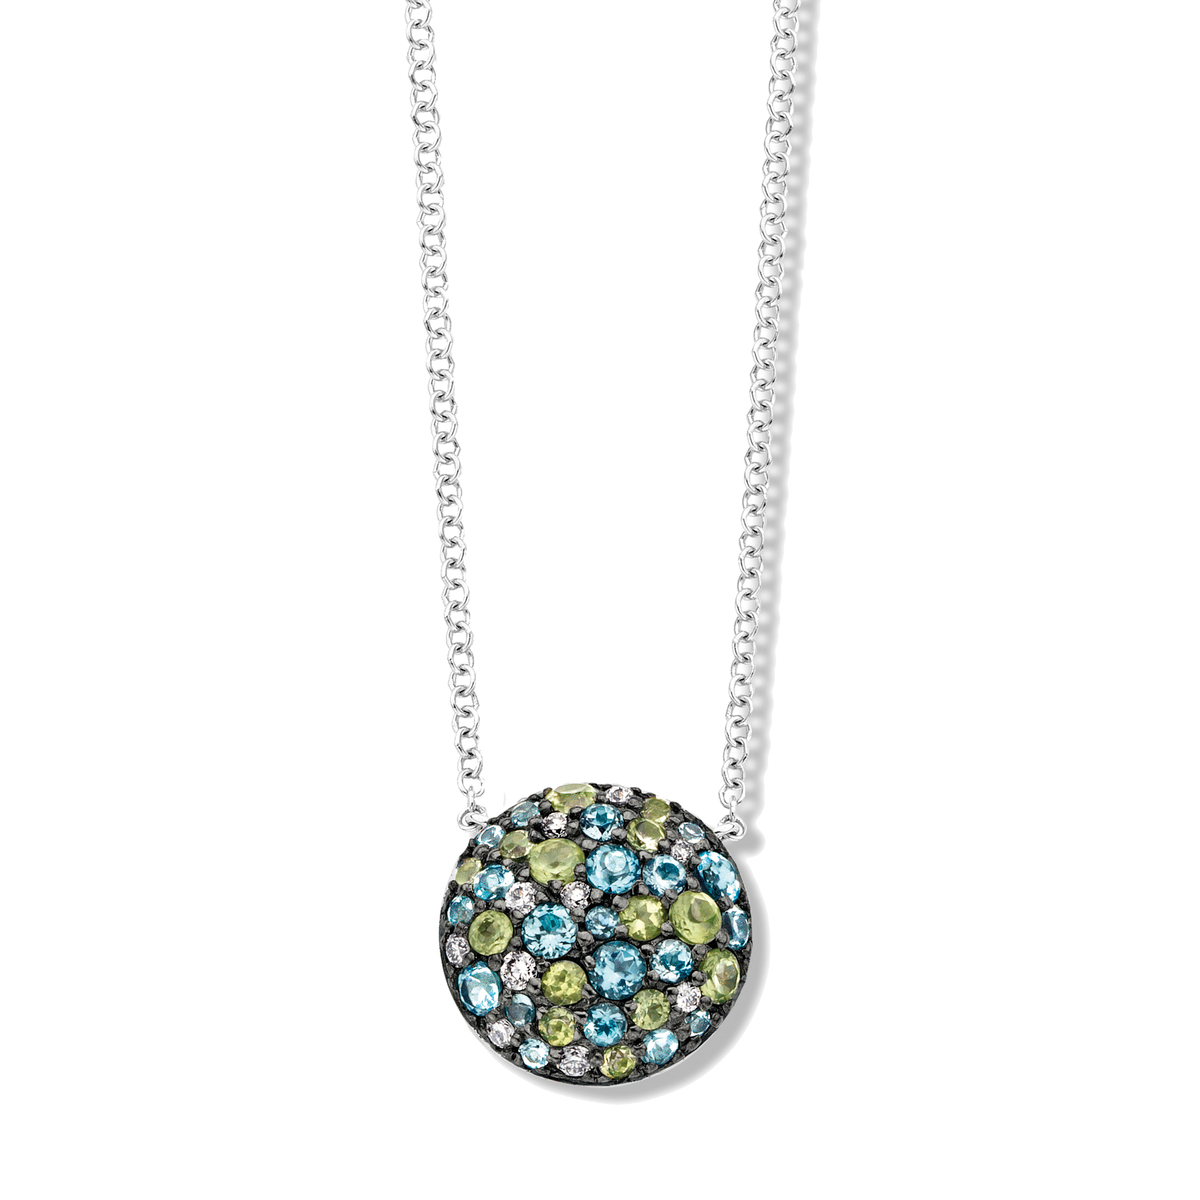 panarea necklace in white gold